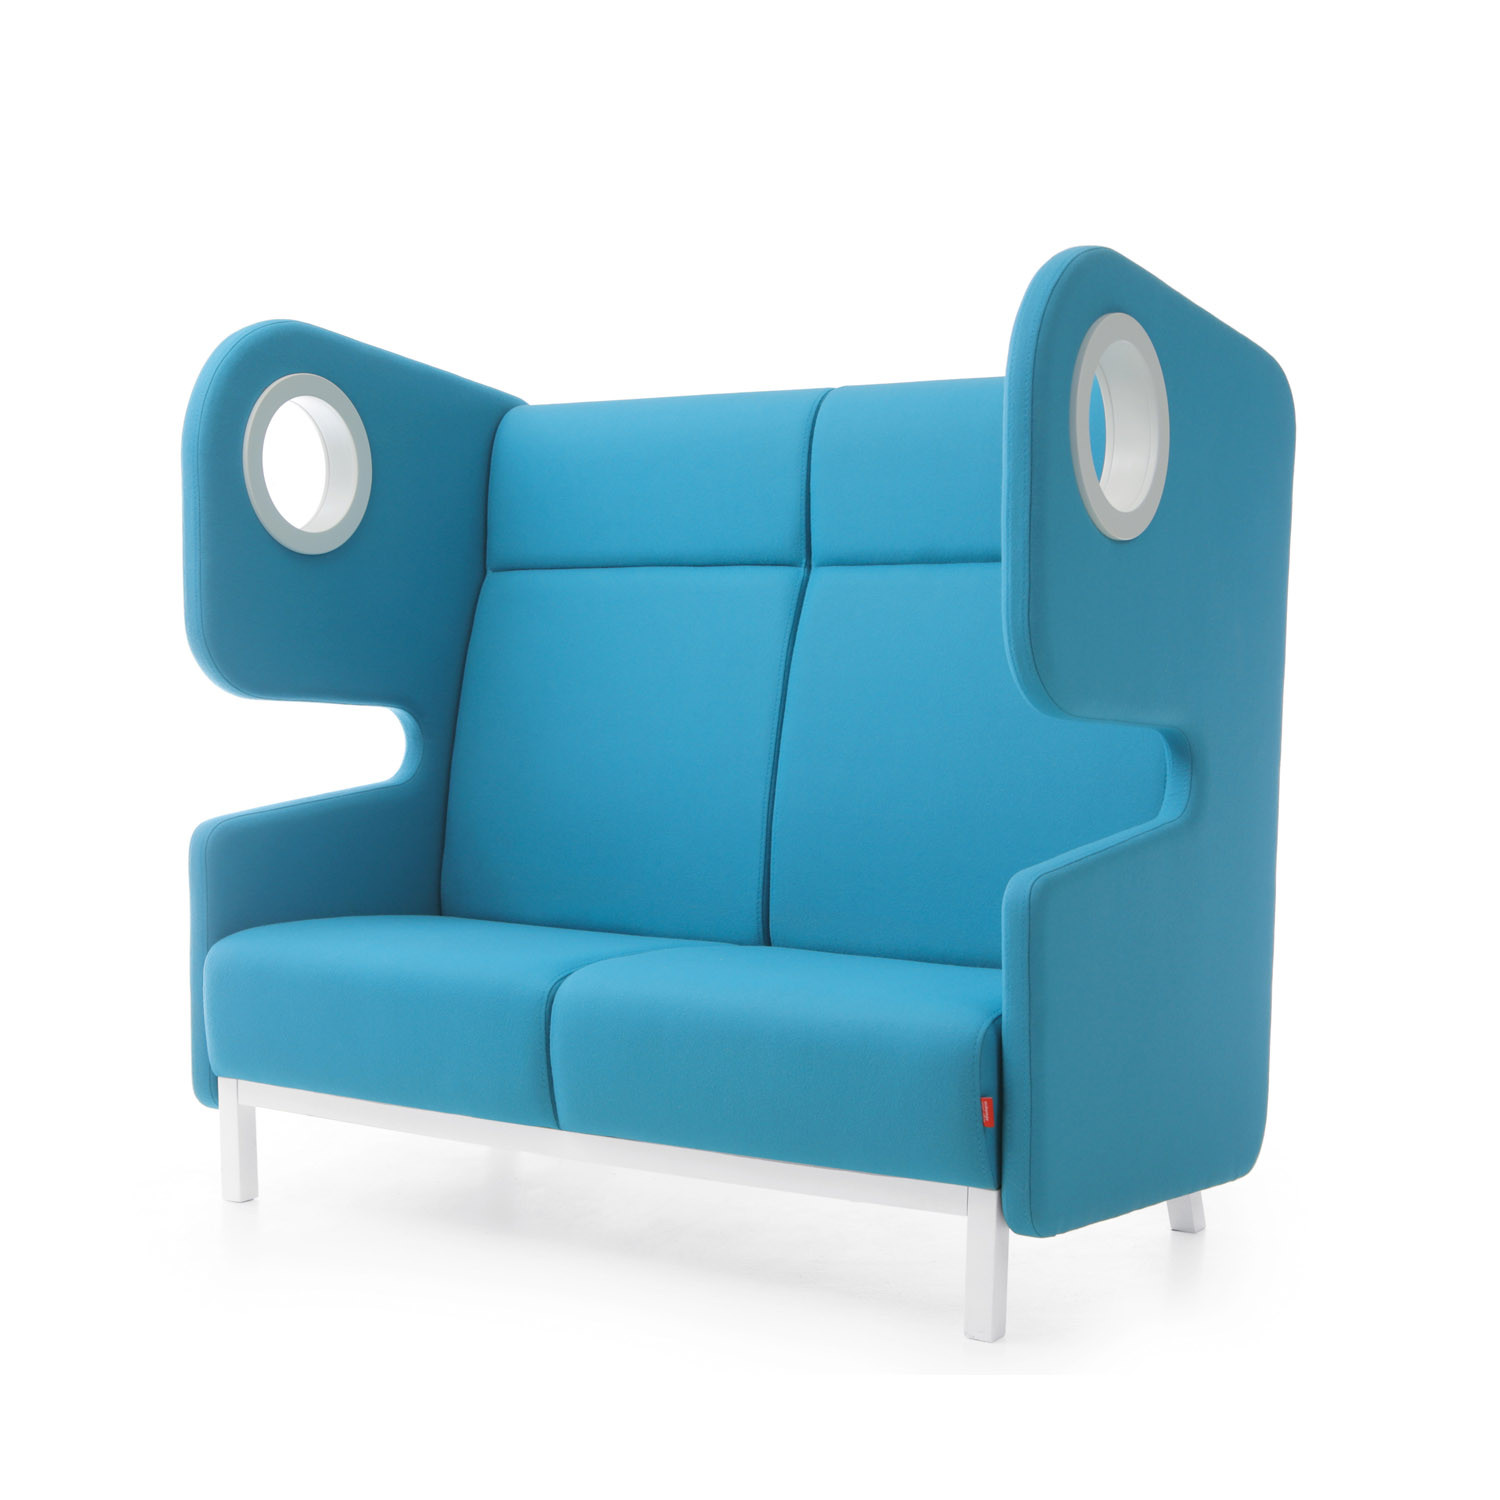 Packman High Back Sofa